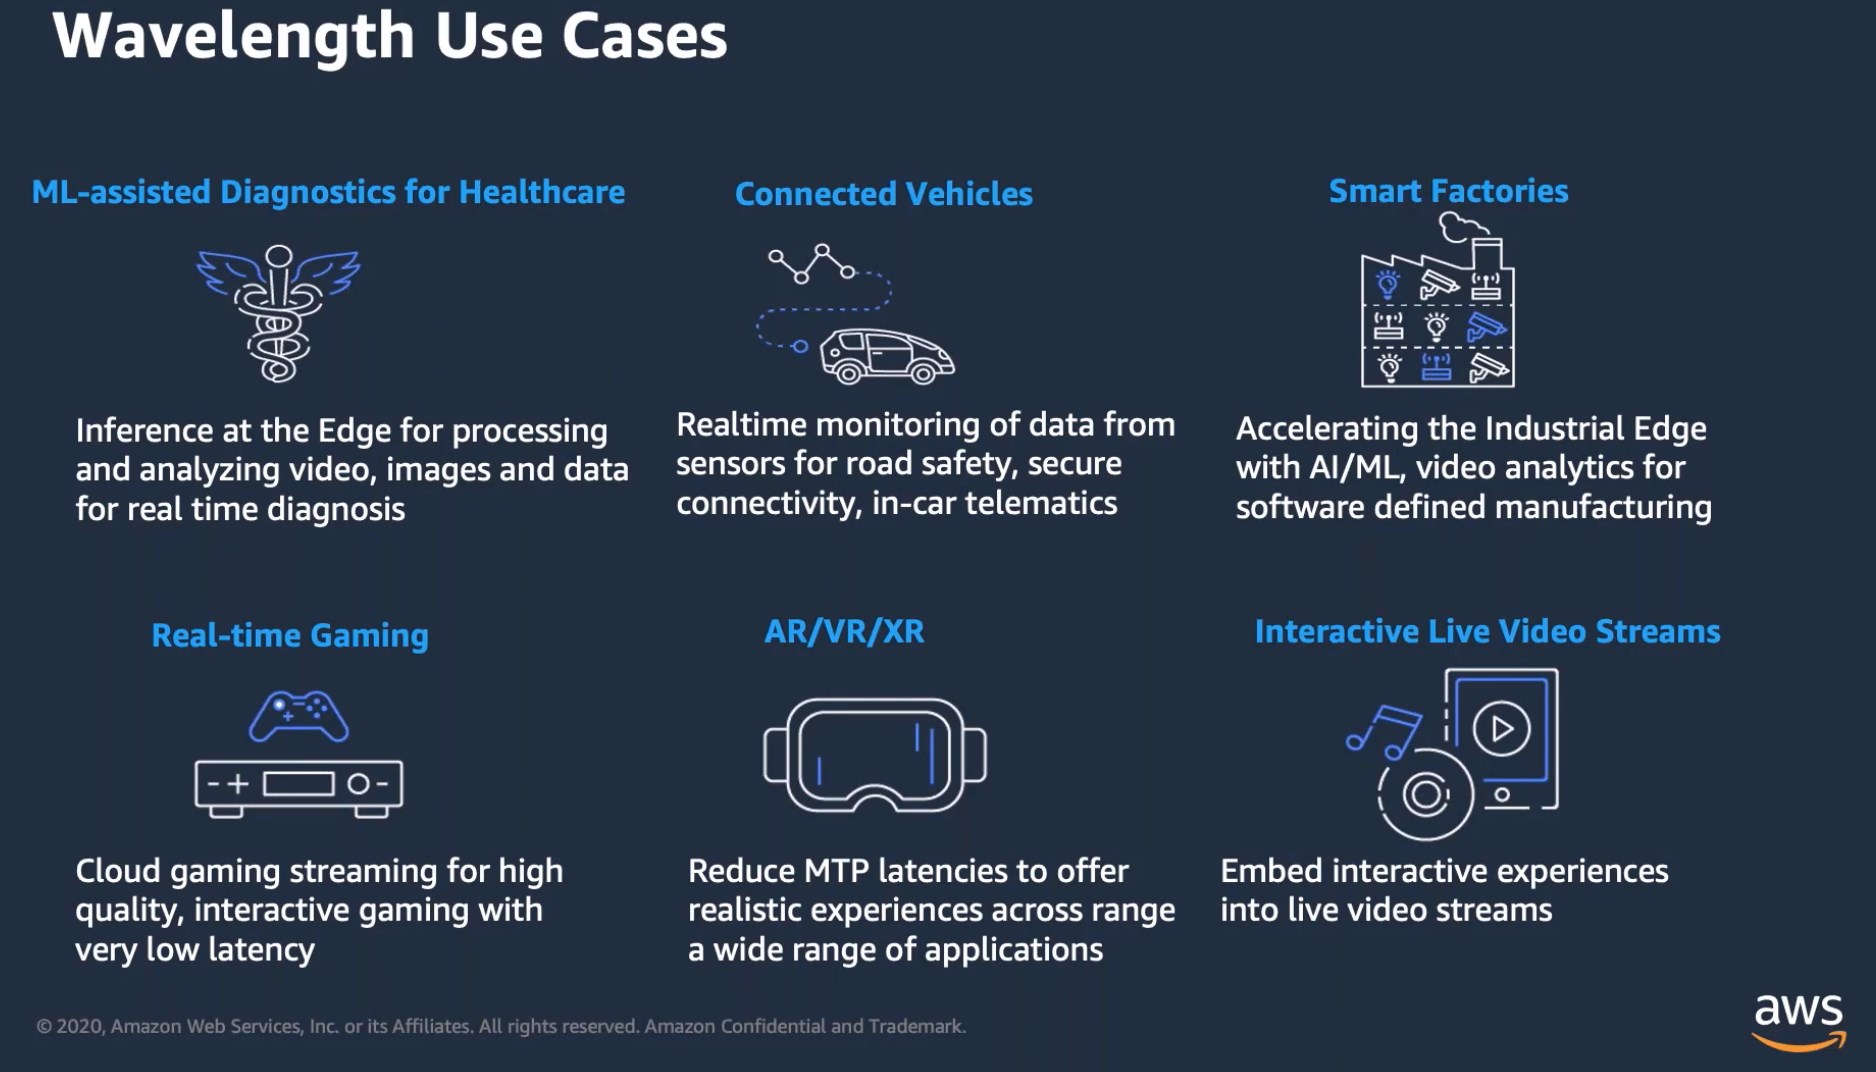 Six examples of where edge computing can enable future use cases.